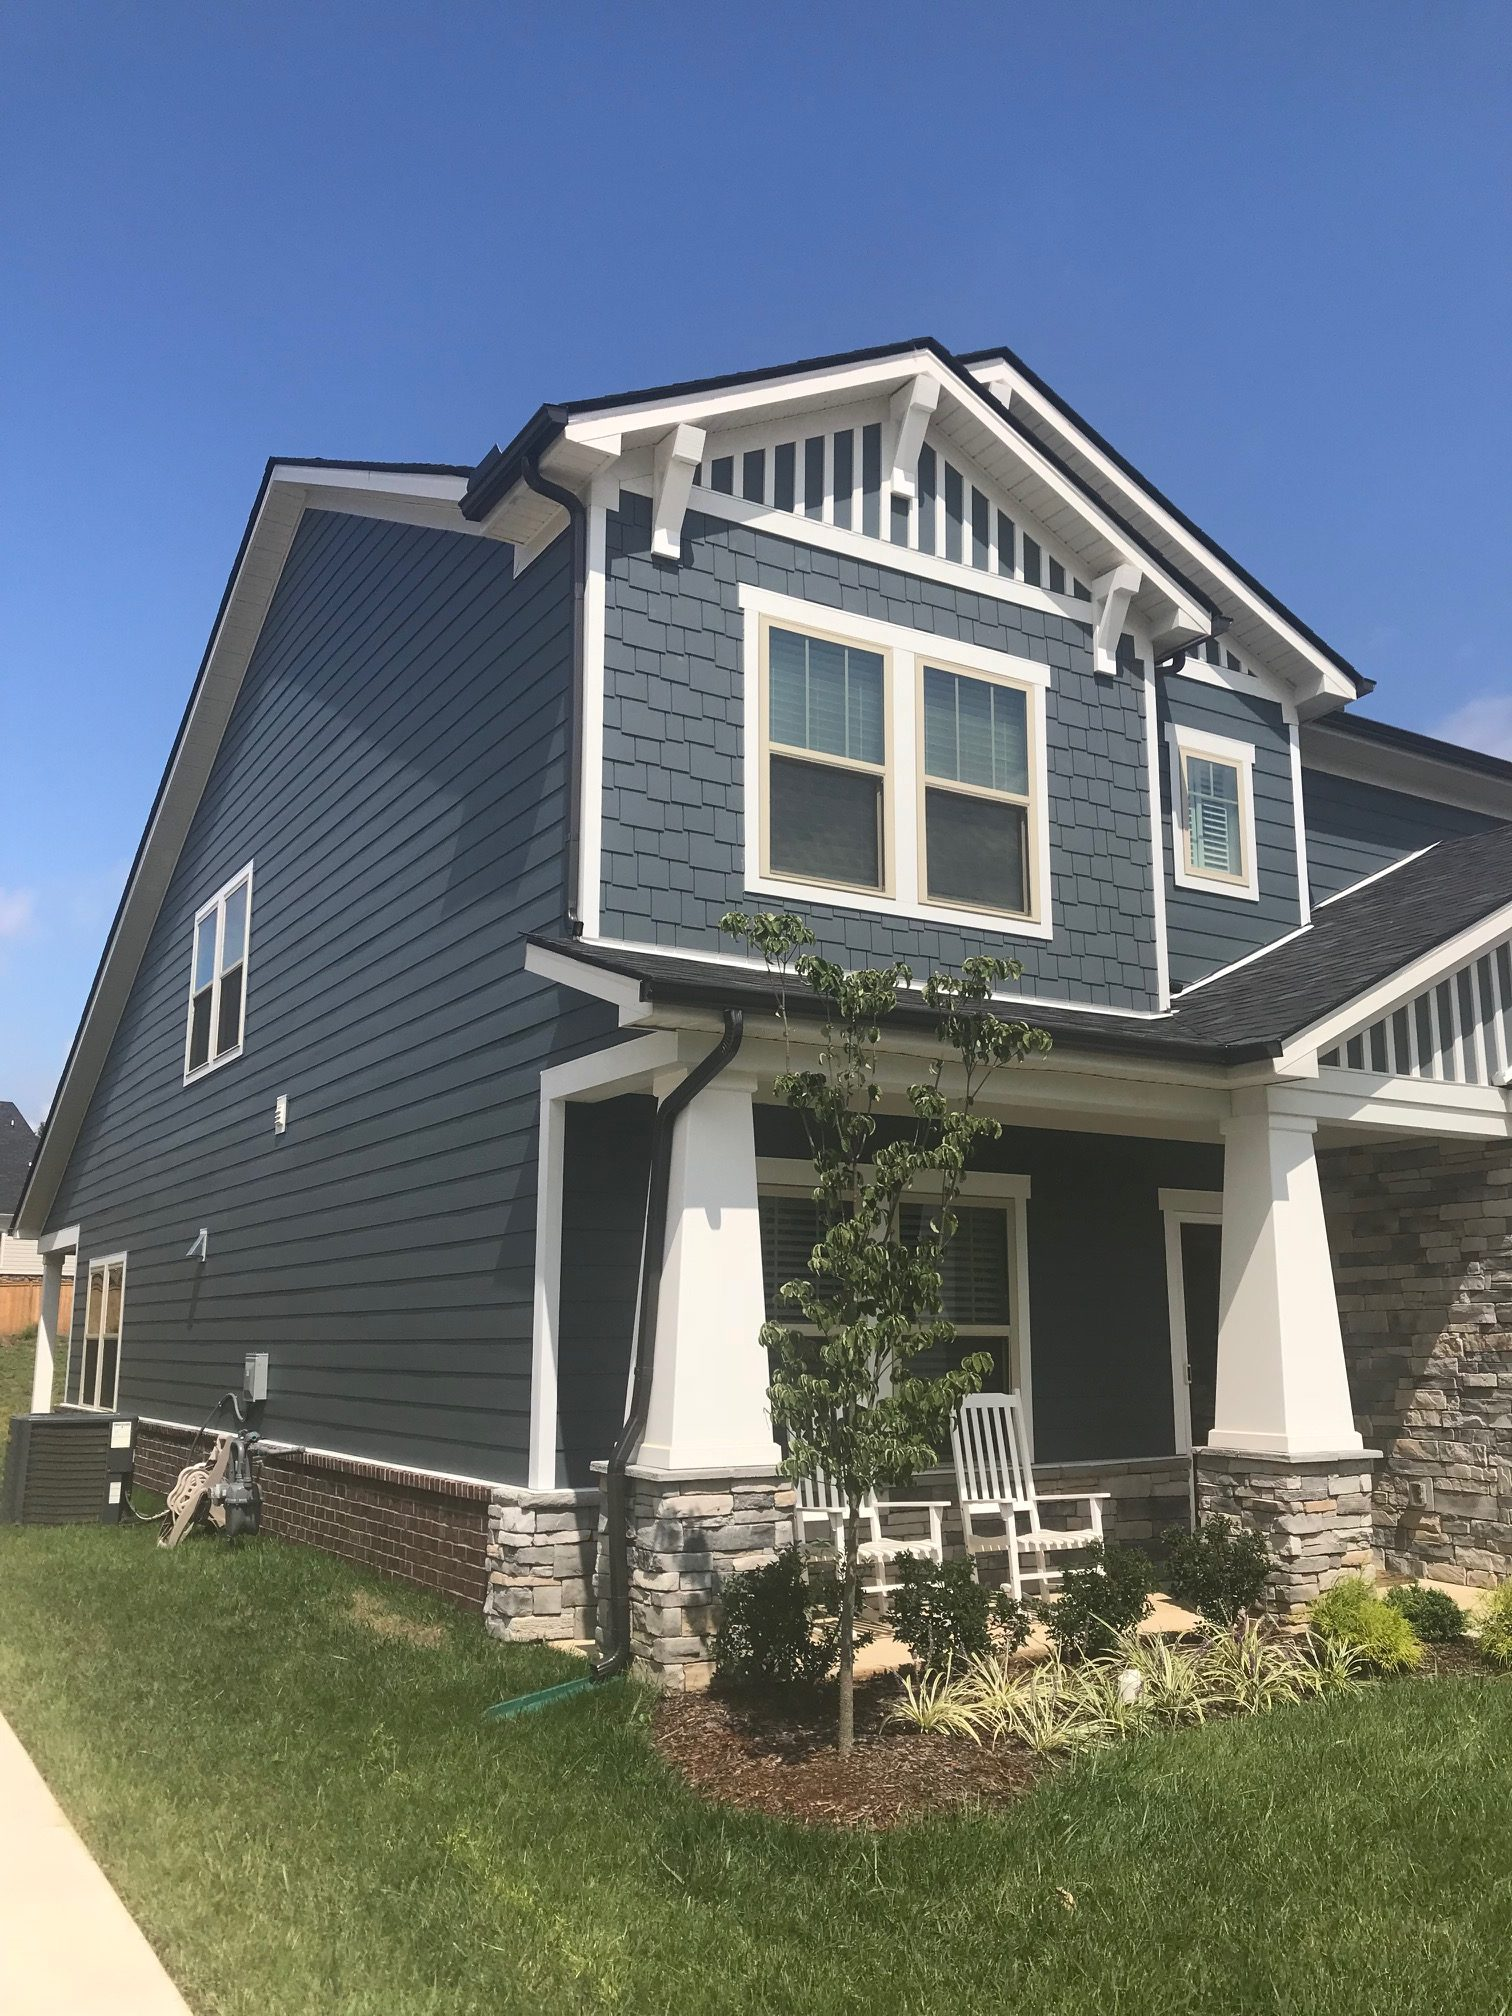 New Build Exterior Painting Upgrade Slate Blue Siding With White Trim Before After